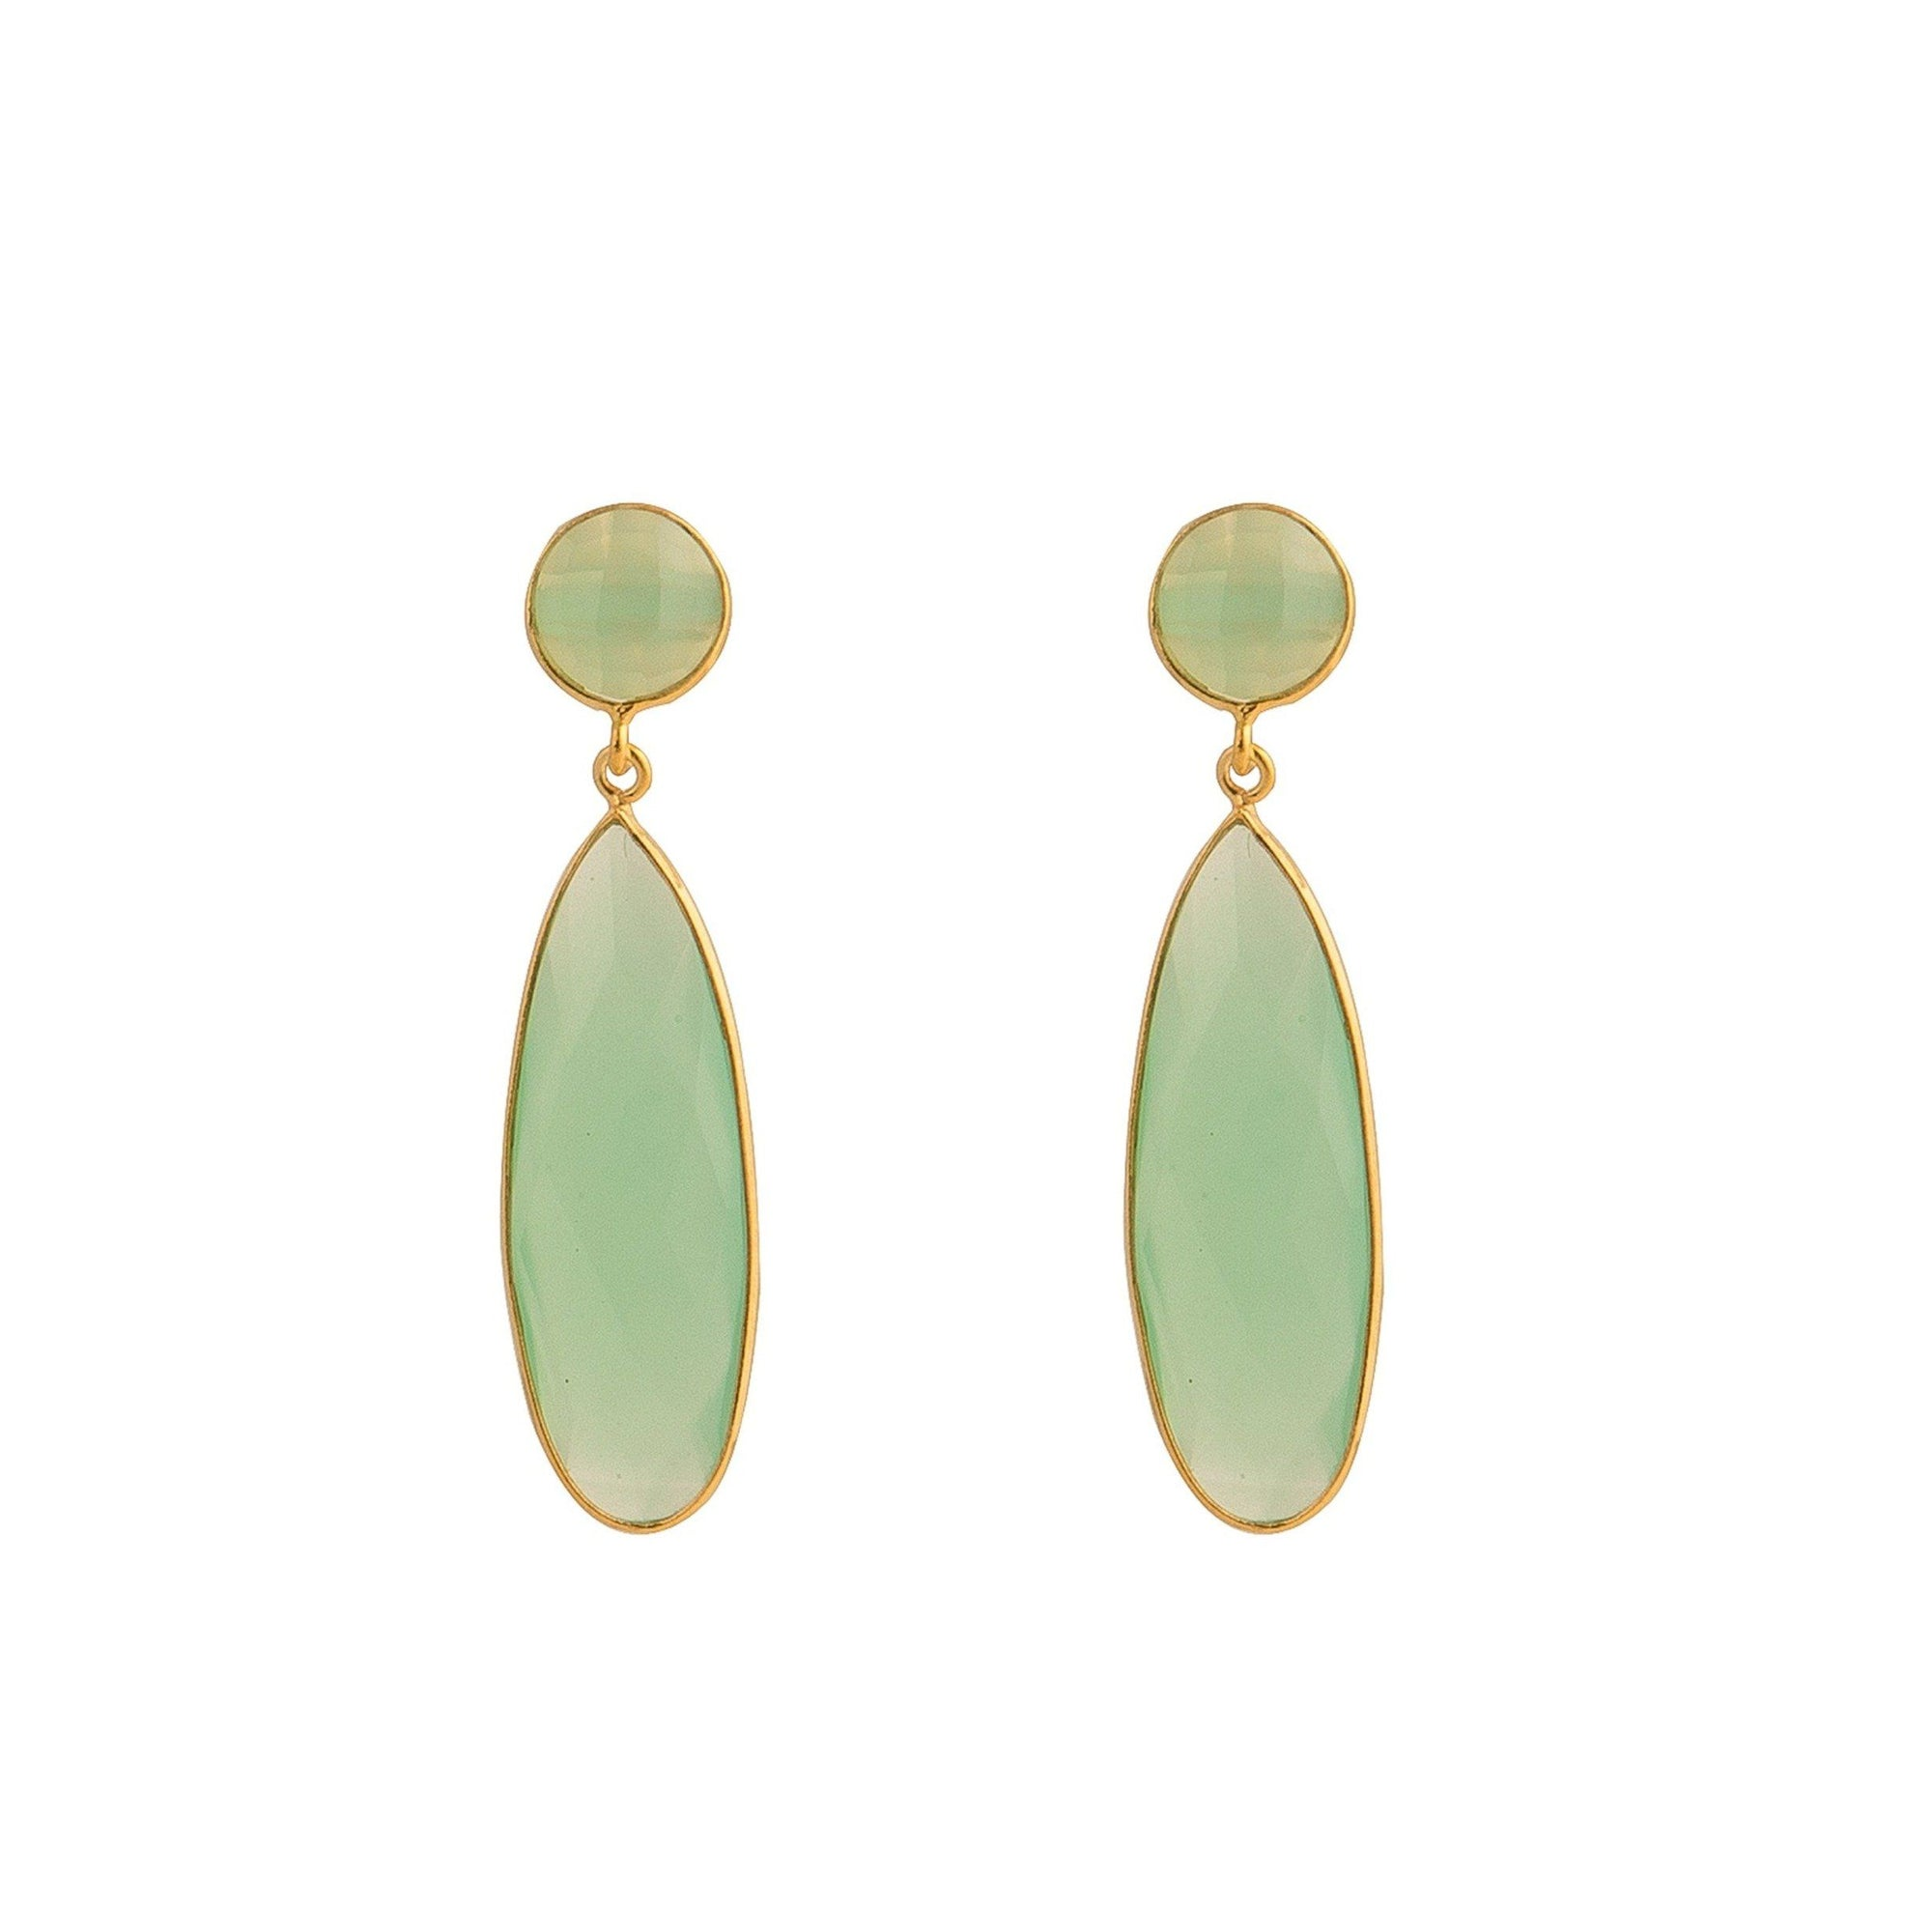 Bernadine gold-plated silver tear-drops in Aqua - Drops